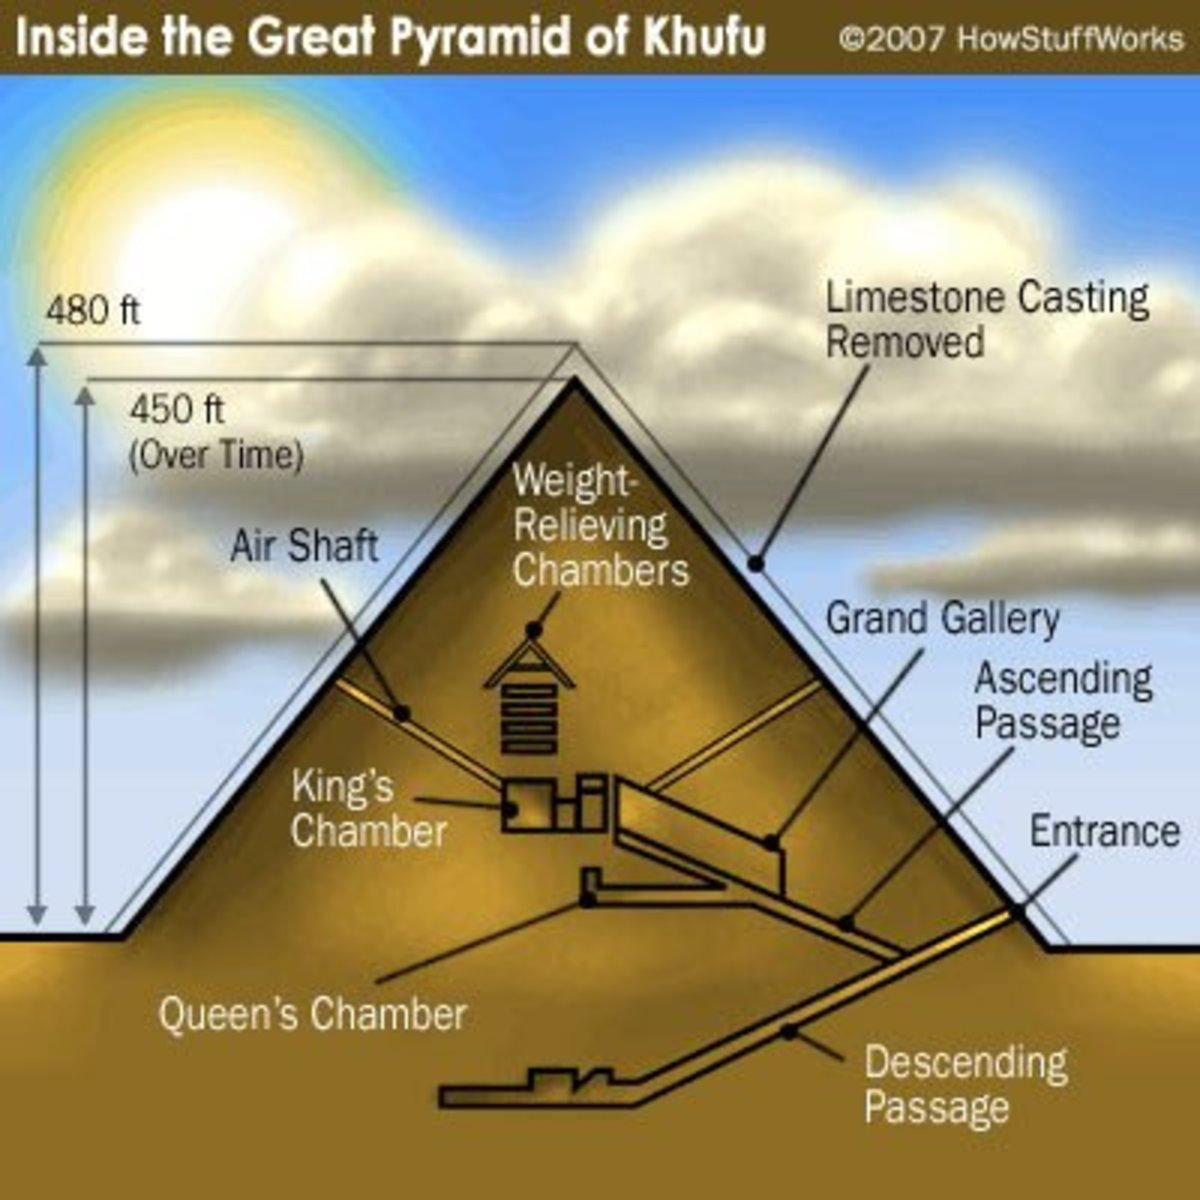 Inside the Great Pyramid of Khufu.